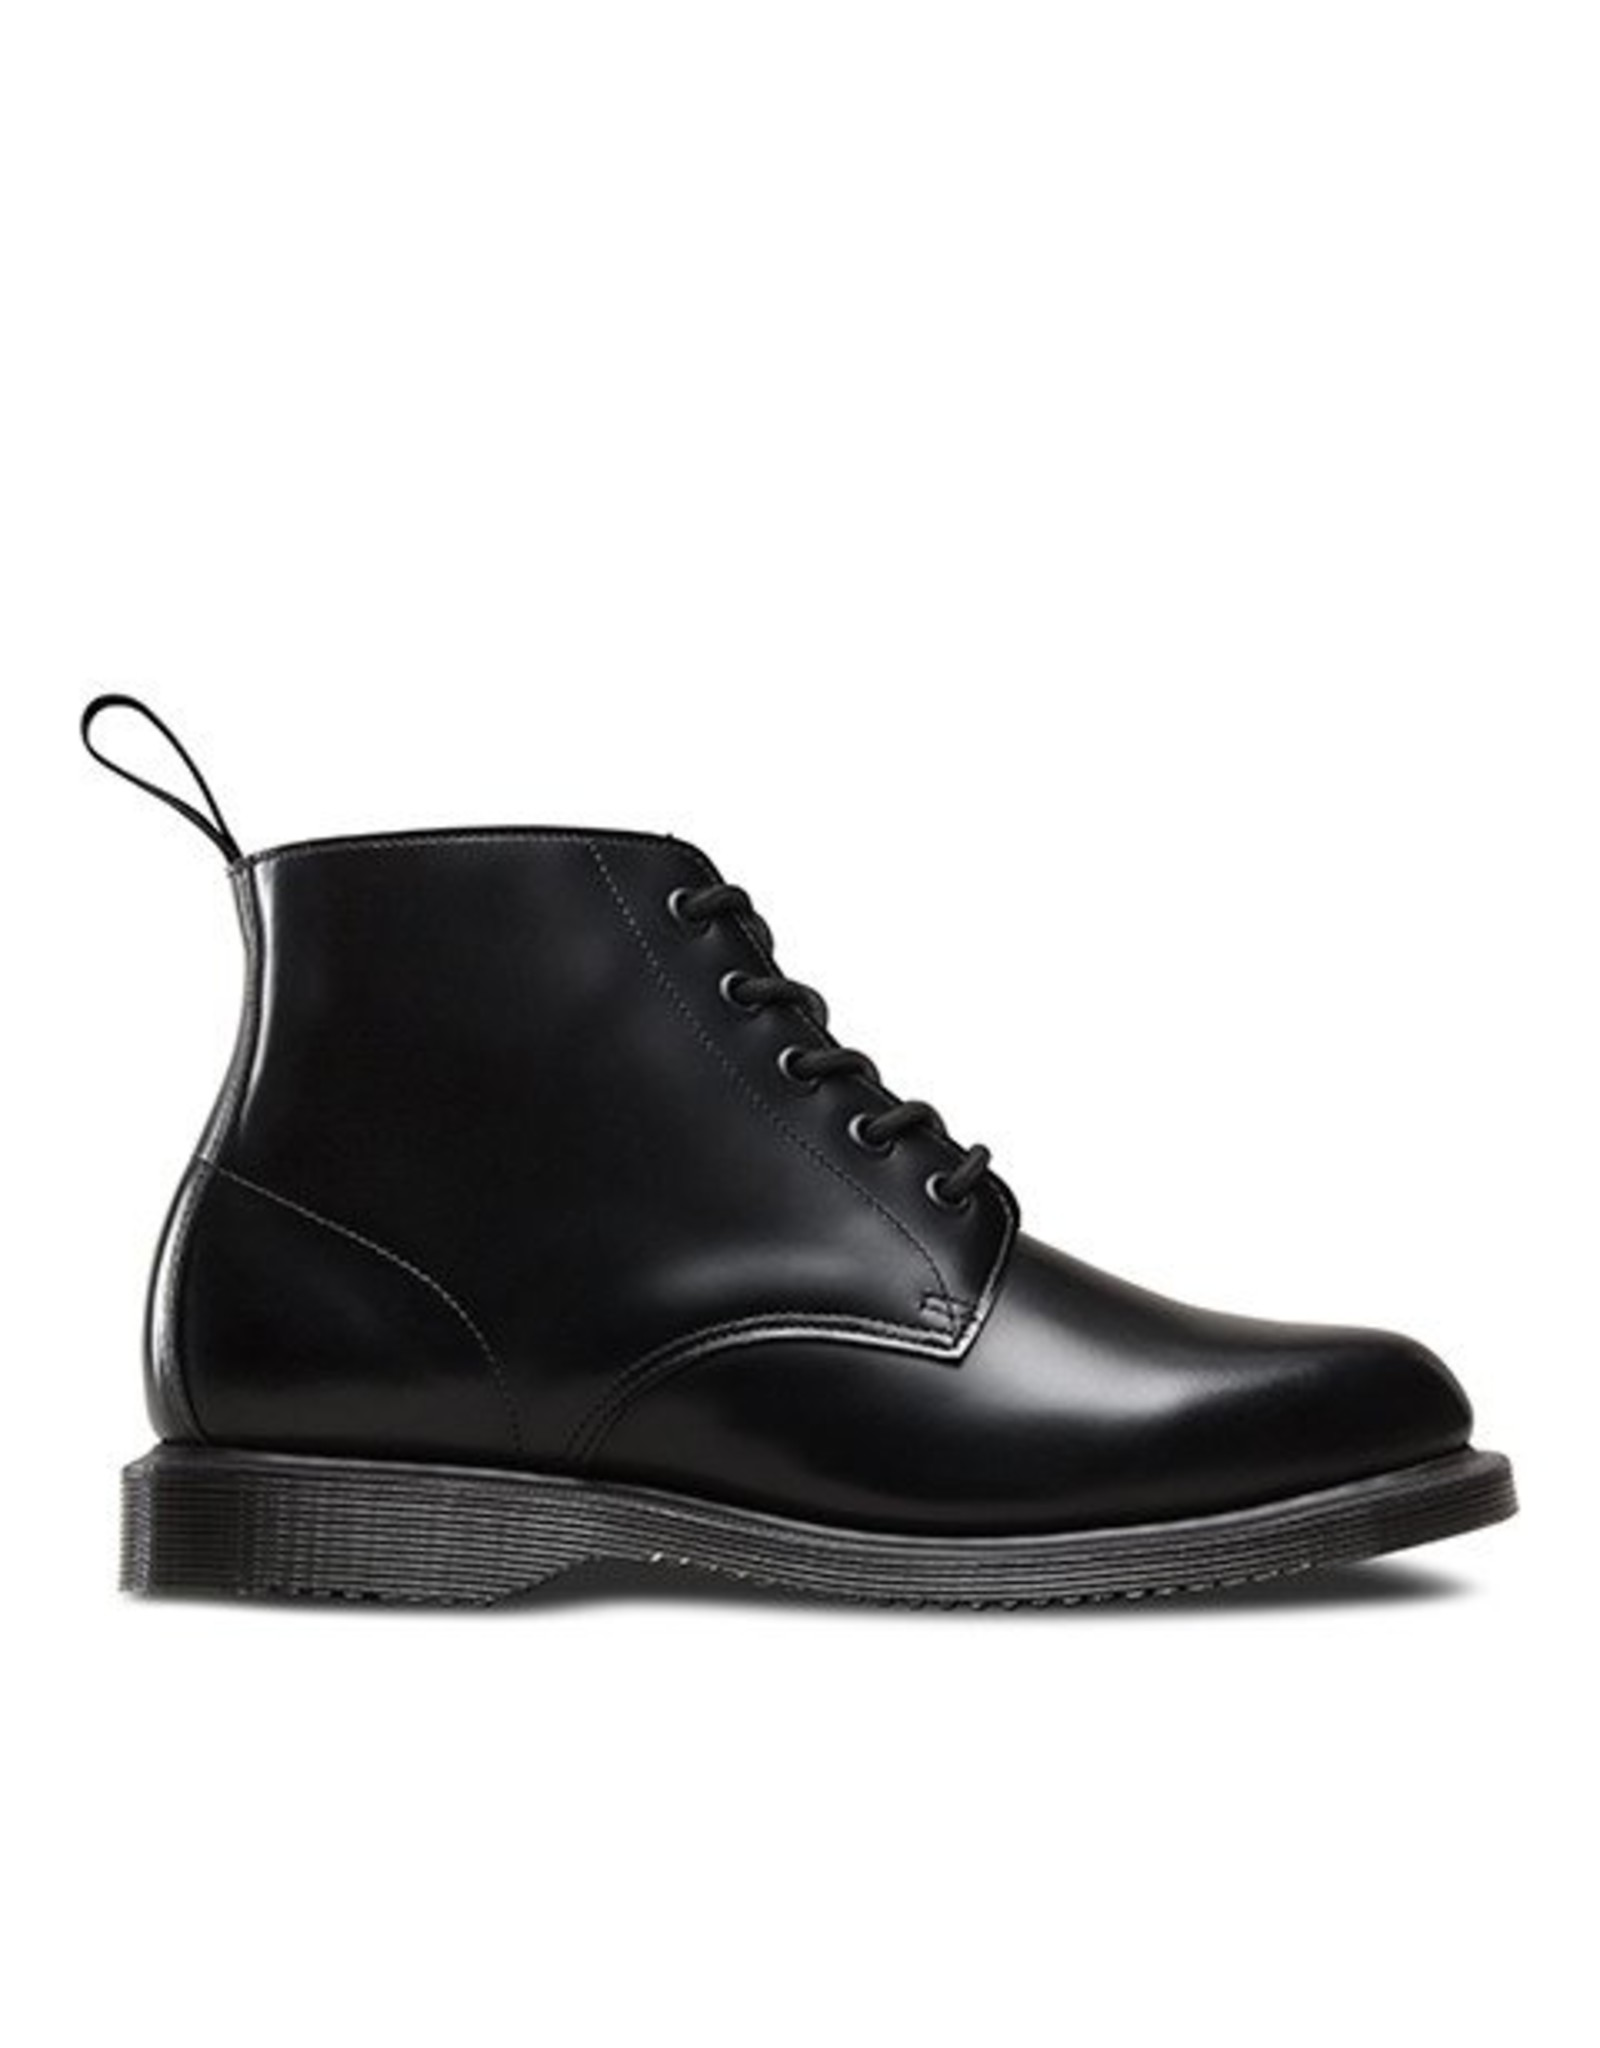 DR. MARTENS EMMELINE SMOOTH BLACK POLISHED SMOOTH 534B-R16701001